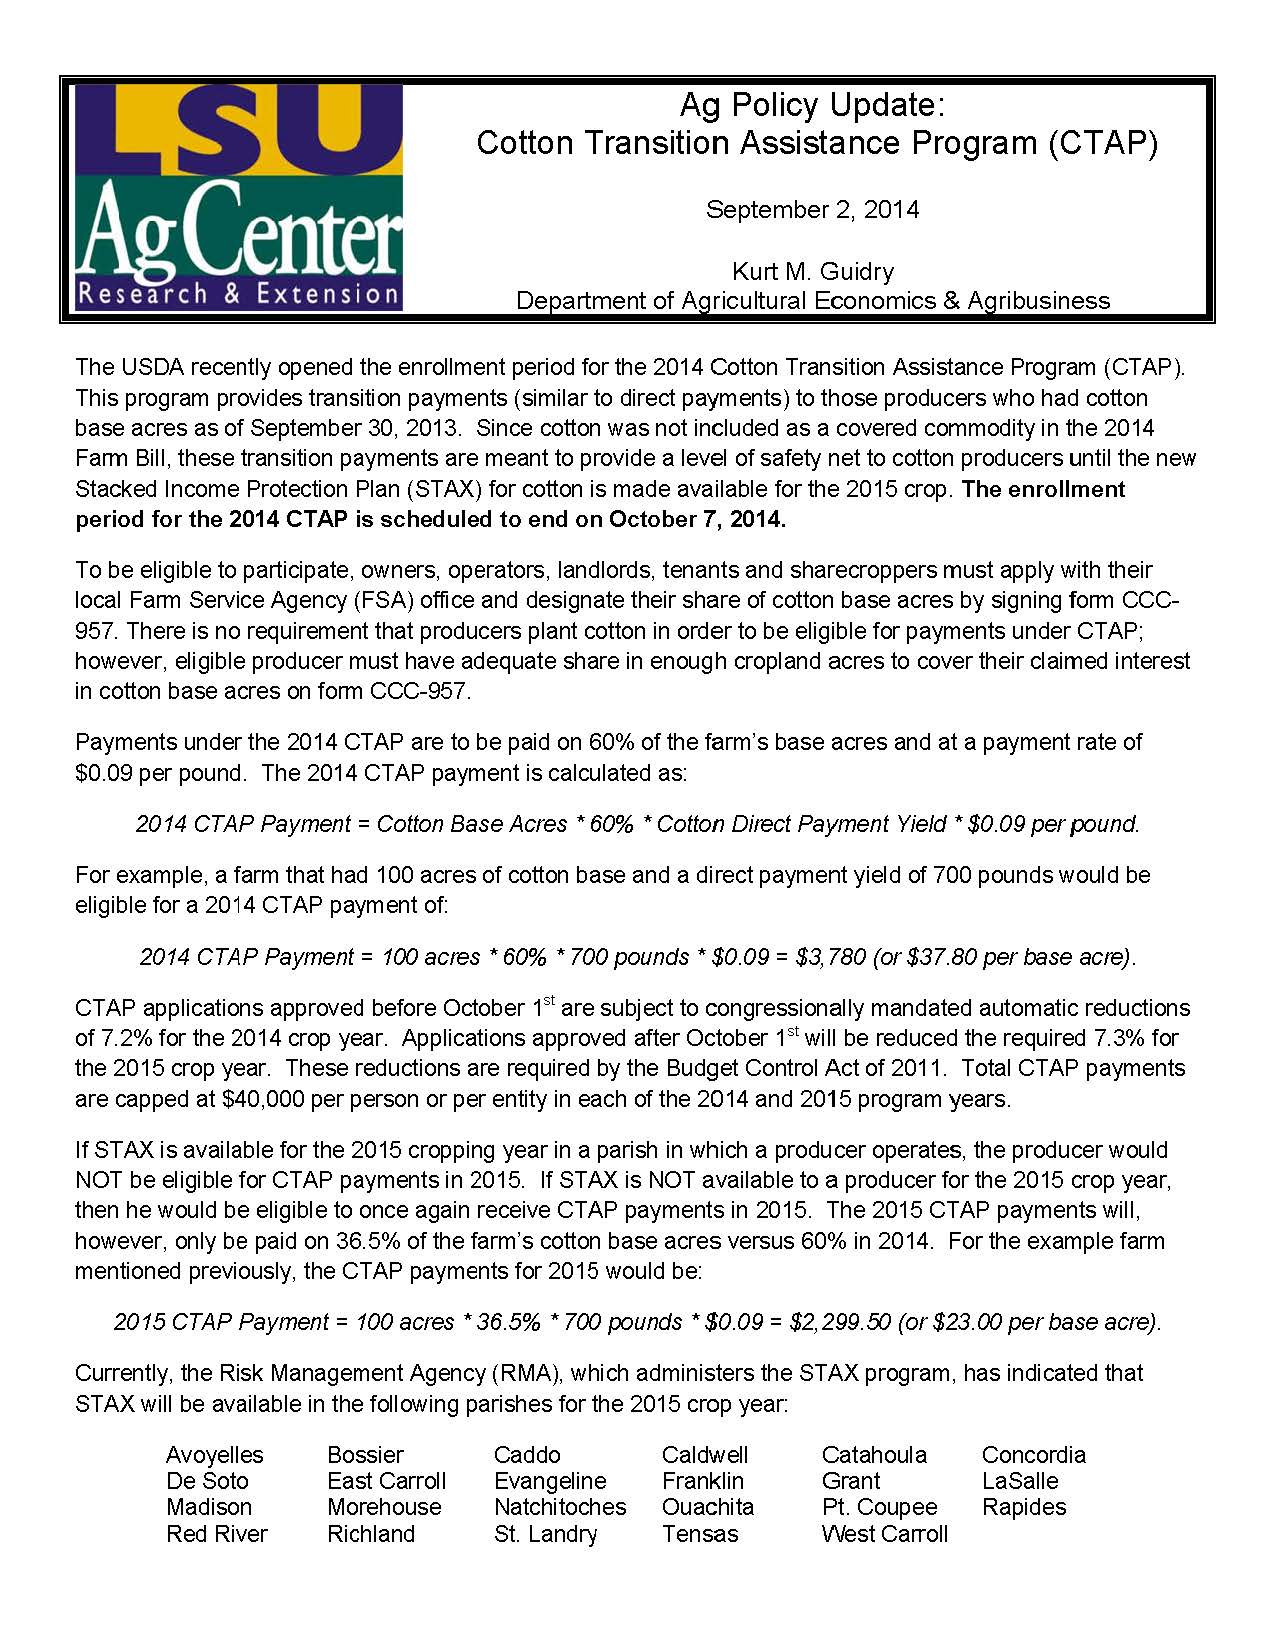 Ag Policy Update: Cotton Transition Assistance Program (CTAP)